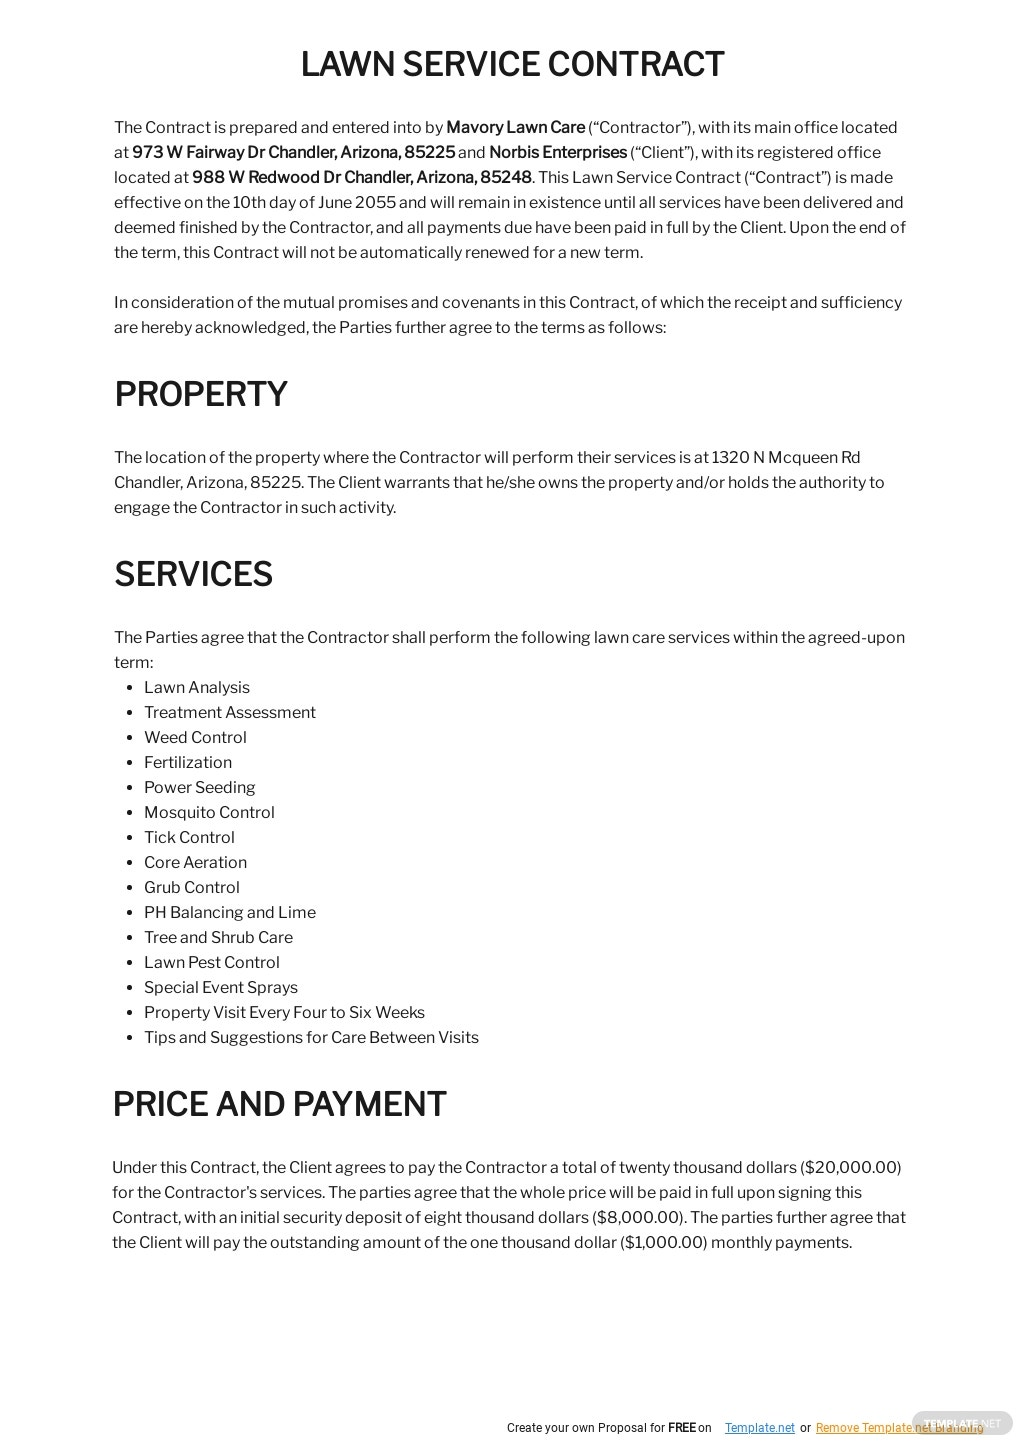 Lawn Service Contract Template 1.jpe